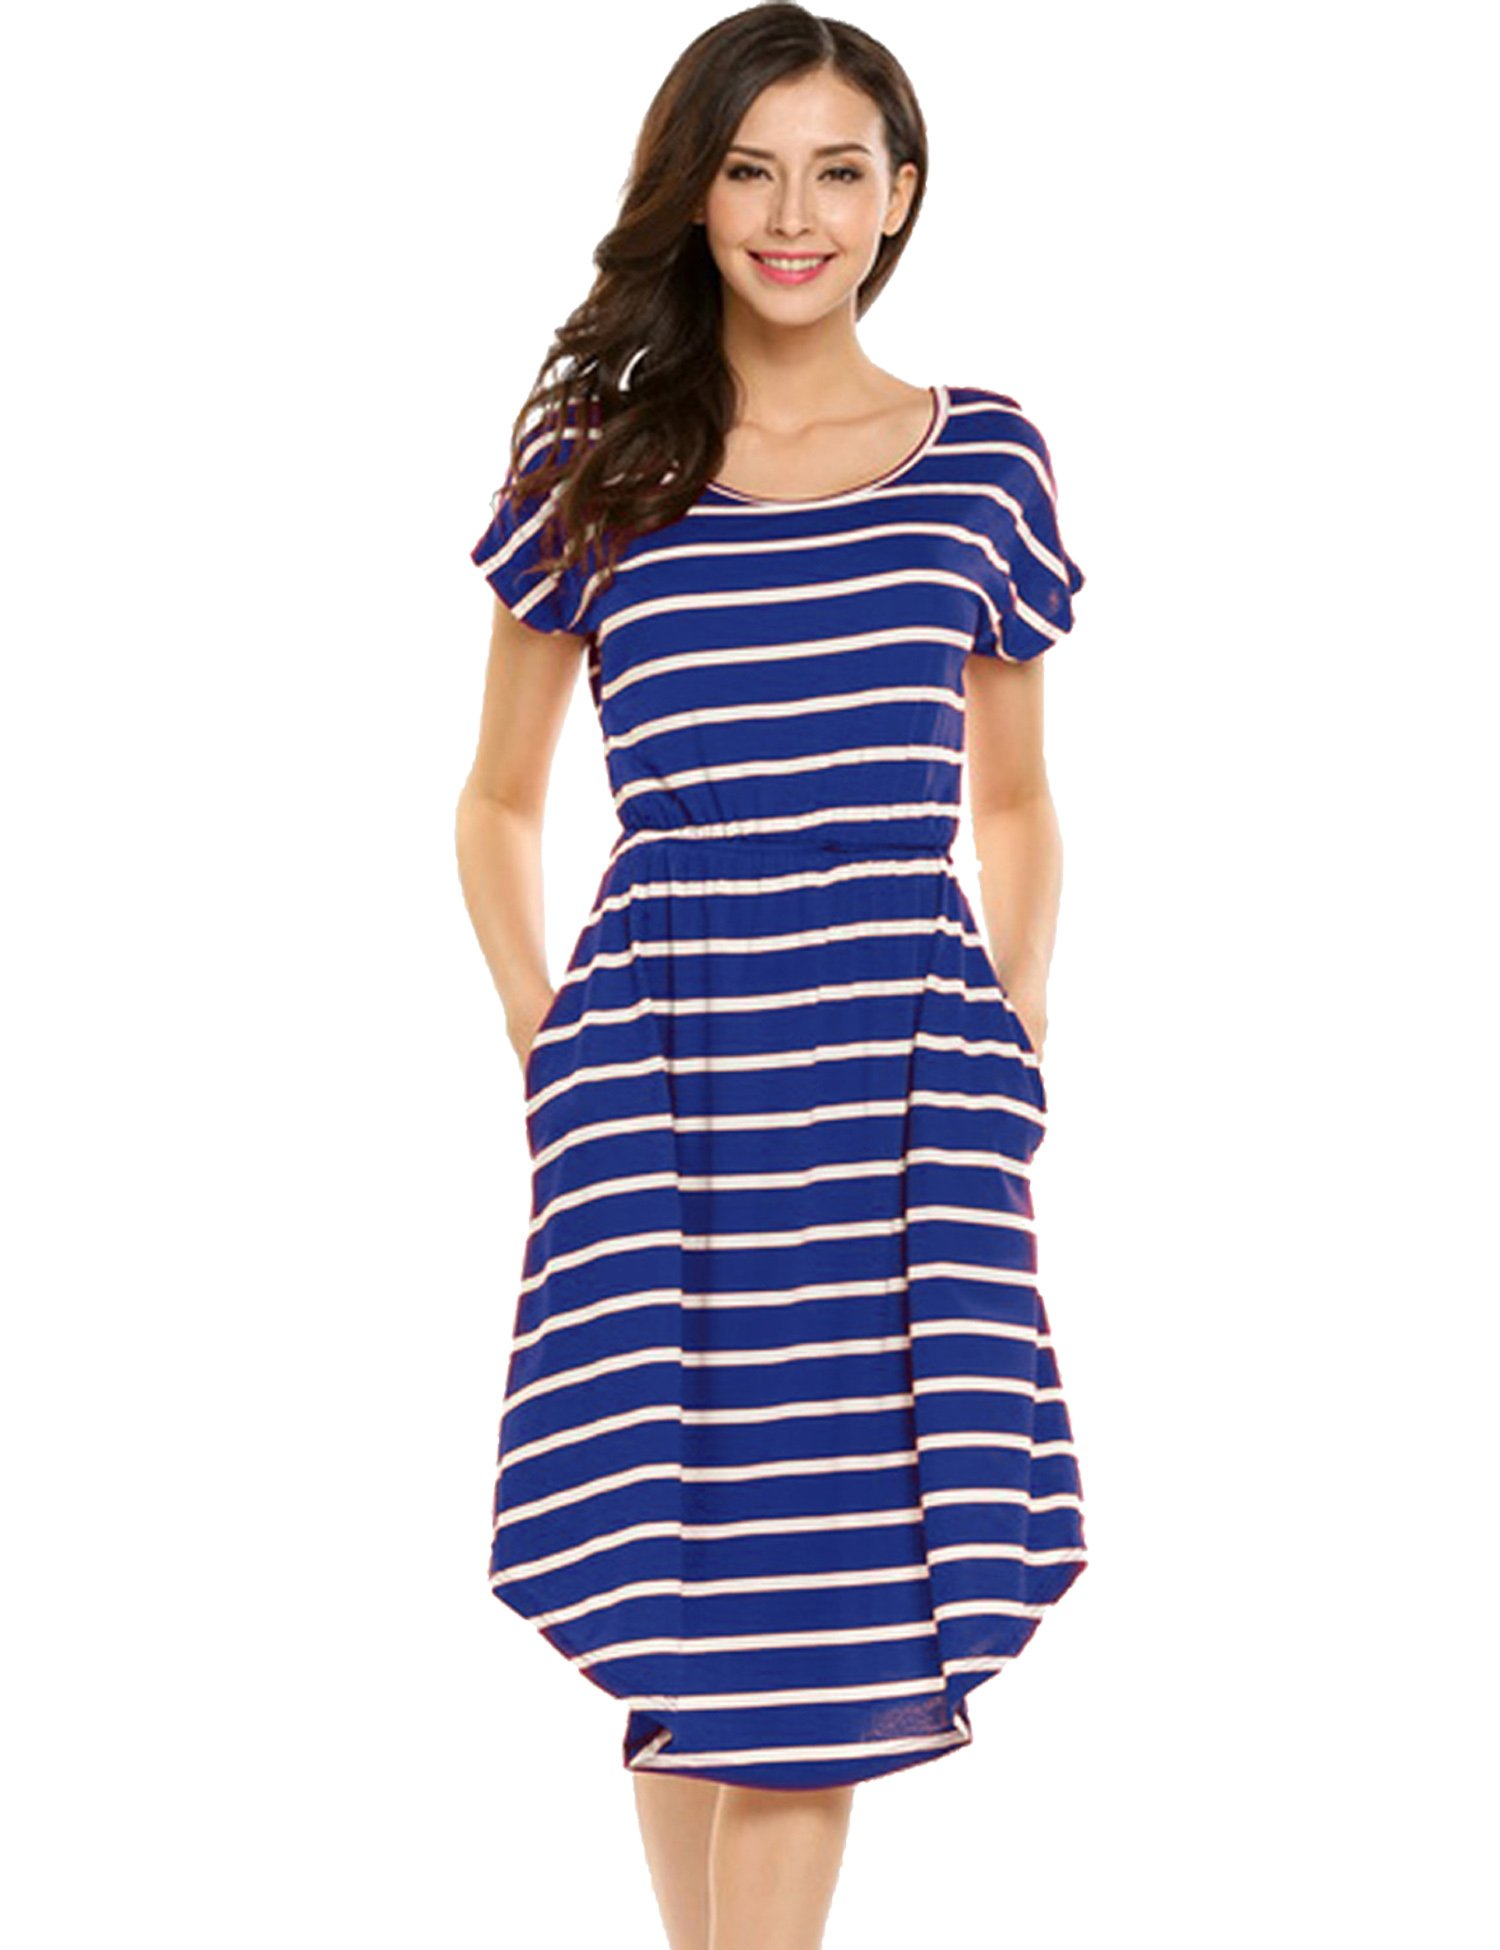 Womens Striped Print Casual Short Sleeve A Line Loose T Shirt